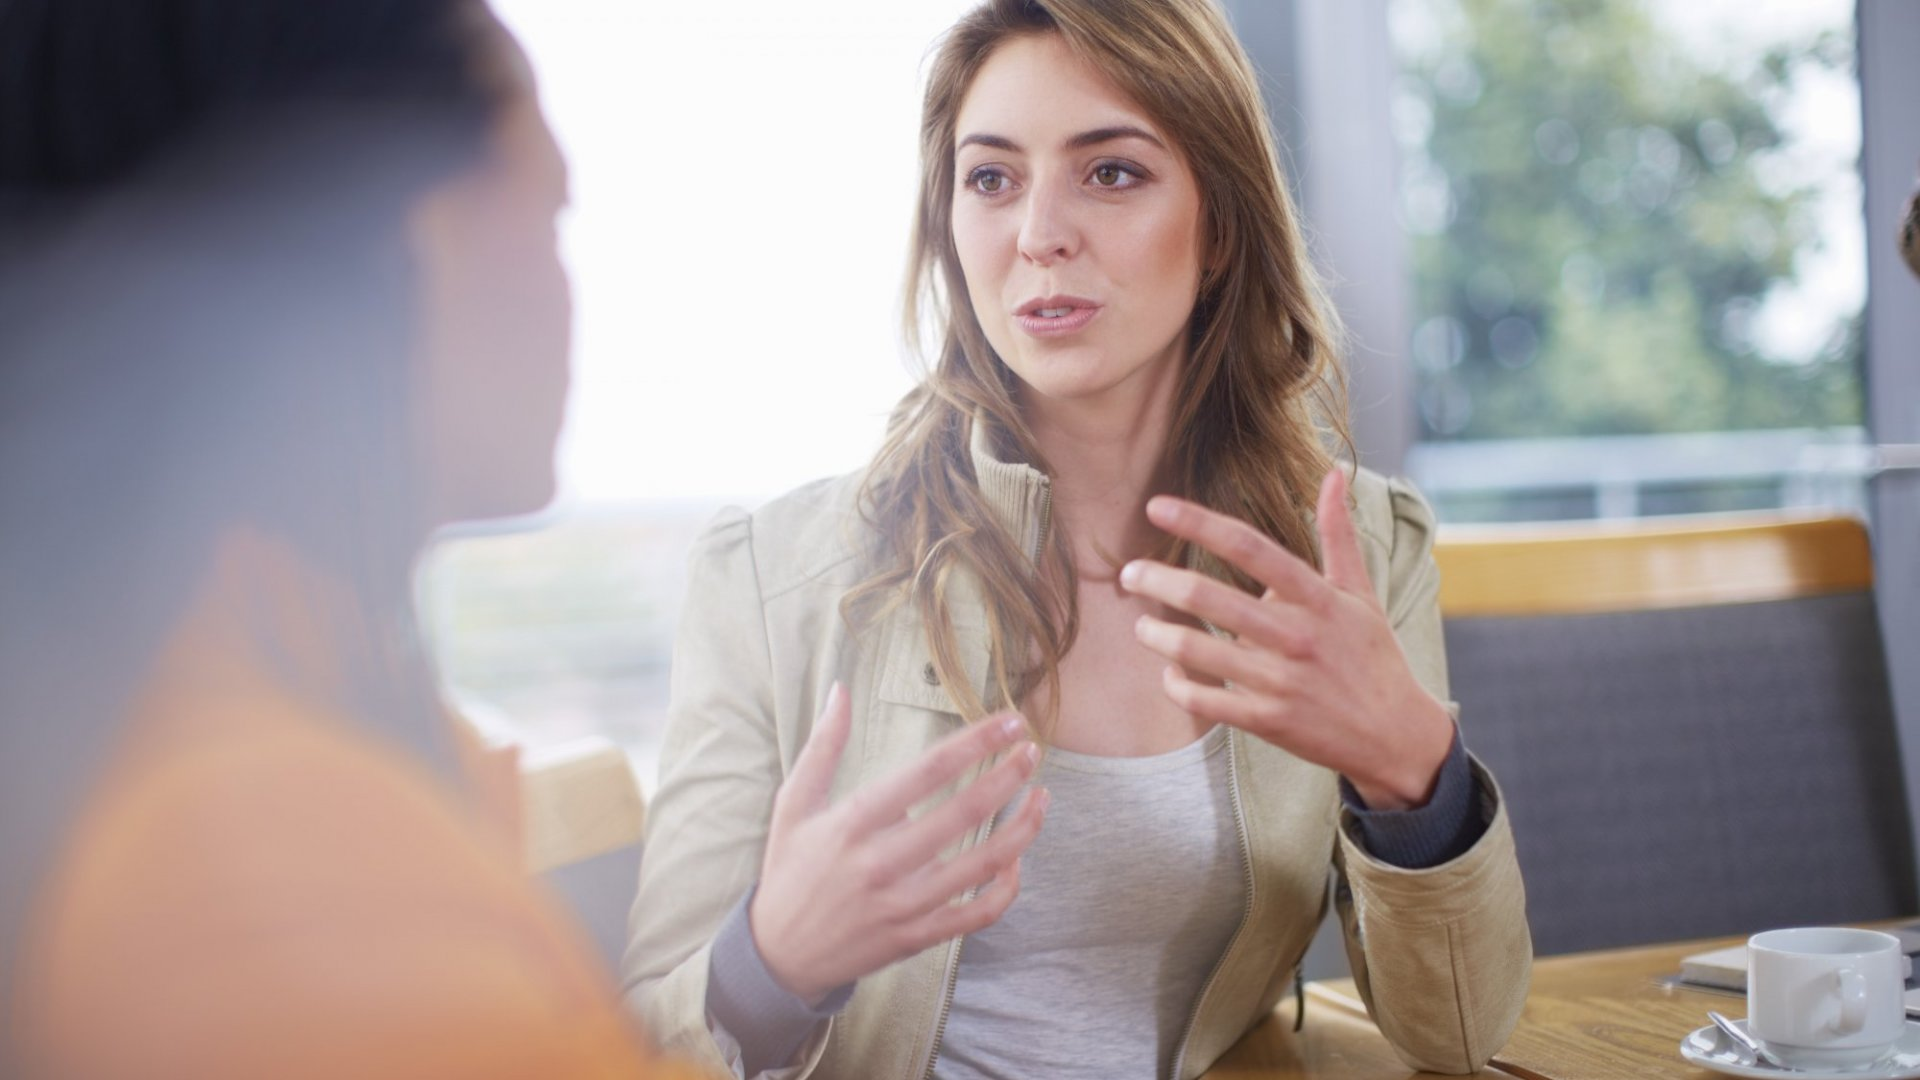 6 Ways to Become Better at Tough Workplace Conversations